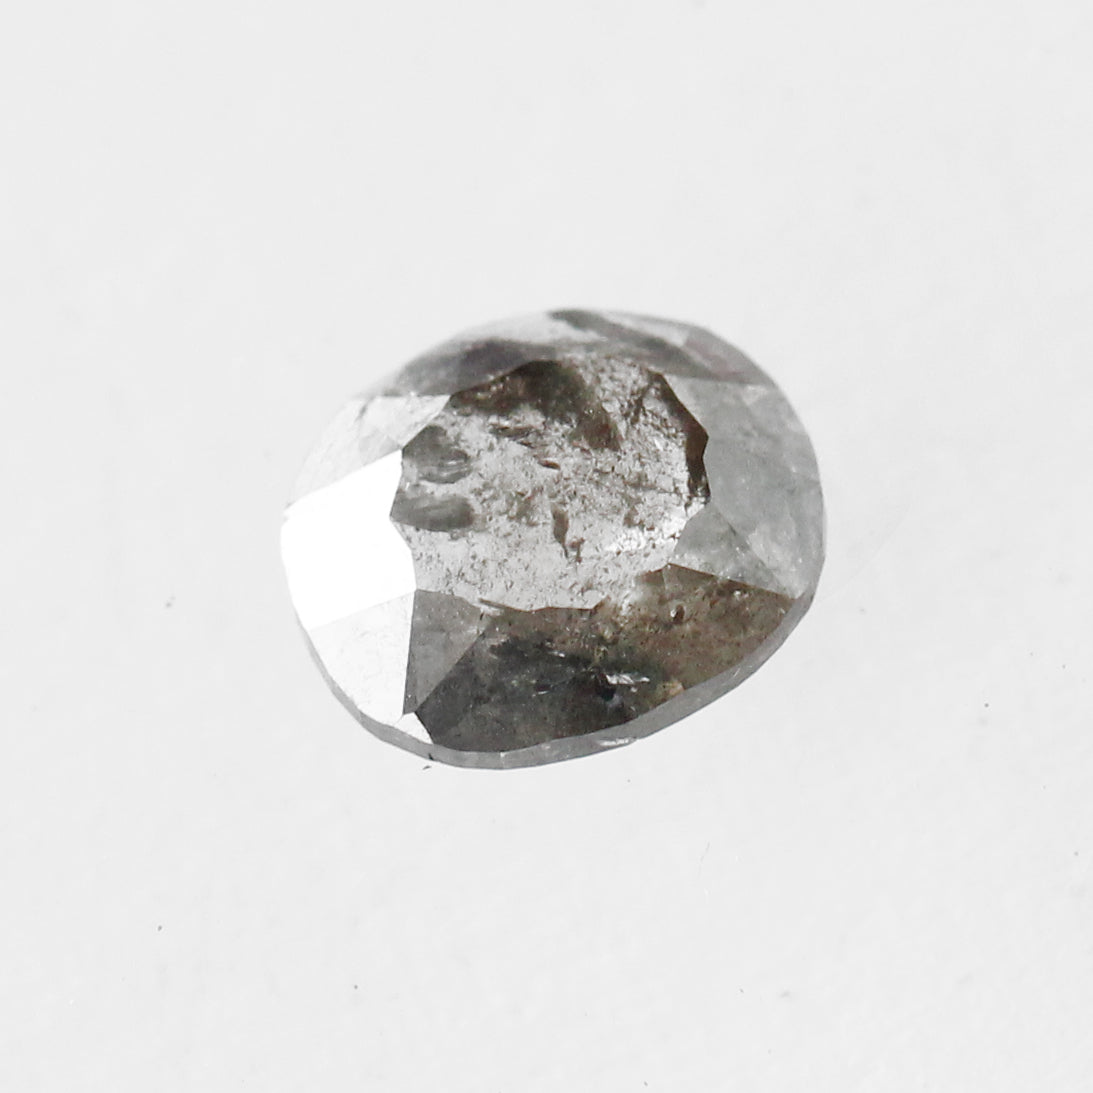 1.87 Carat Oval Celestial Diamond® for Custom Work - Inventory Code RO187 - Celestial Diamonds ® by Midwinter Co.